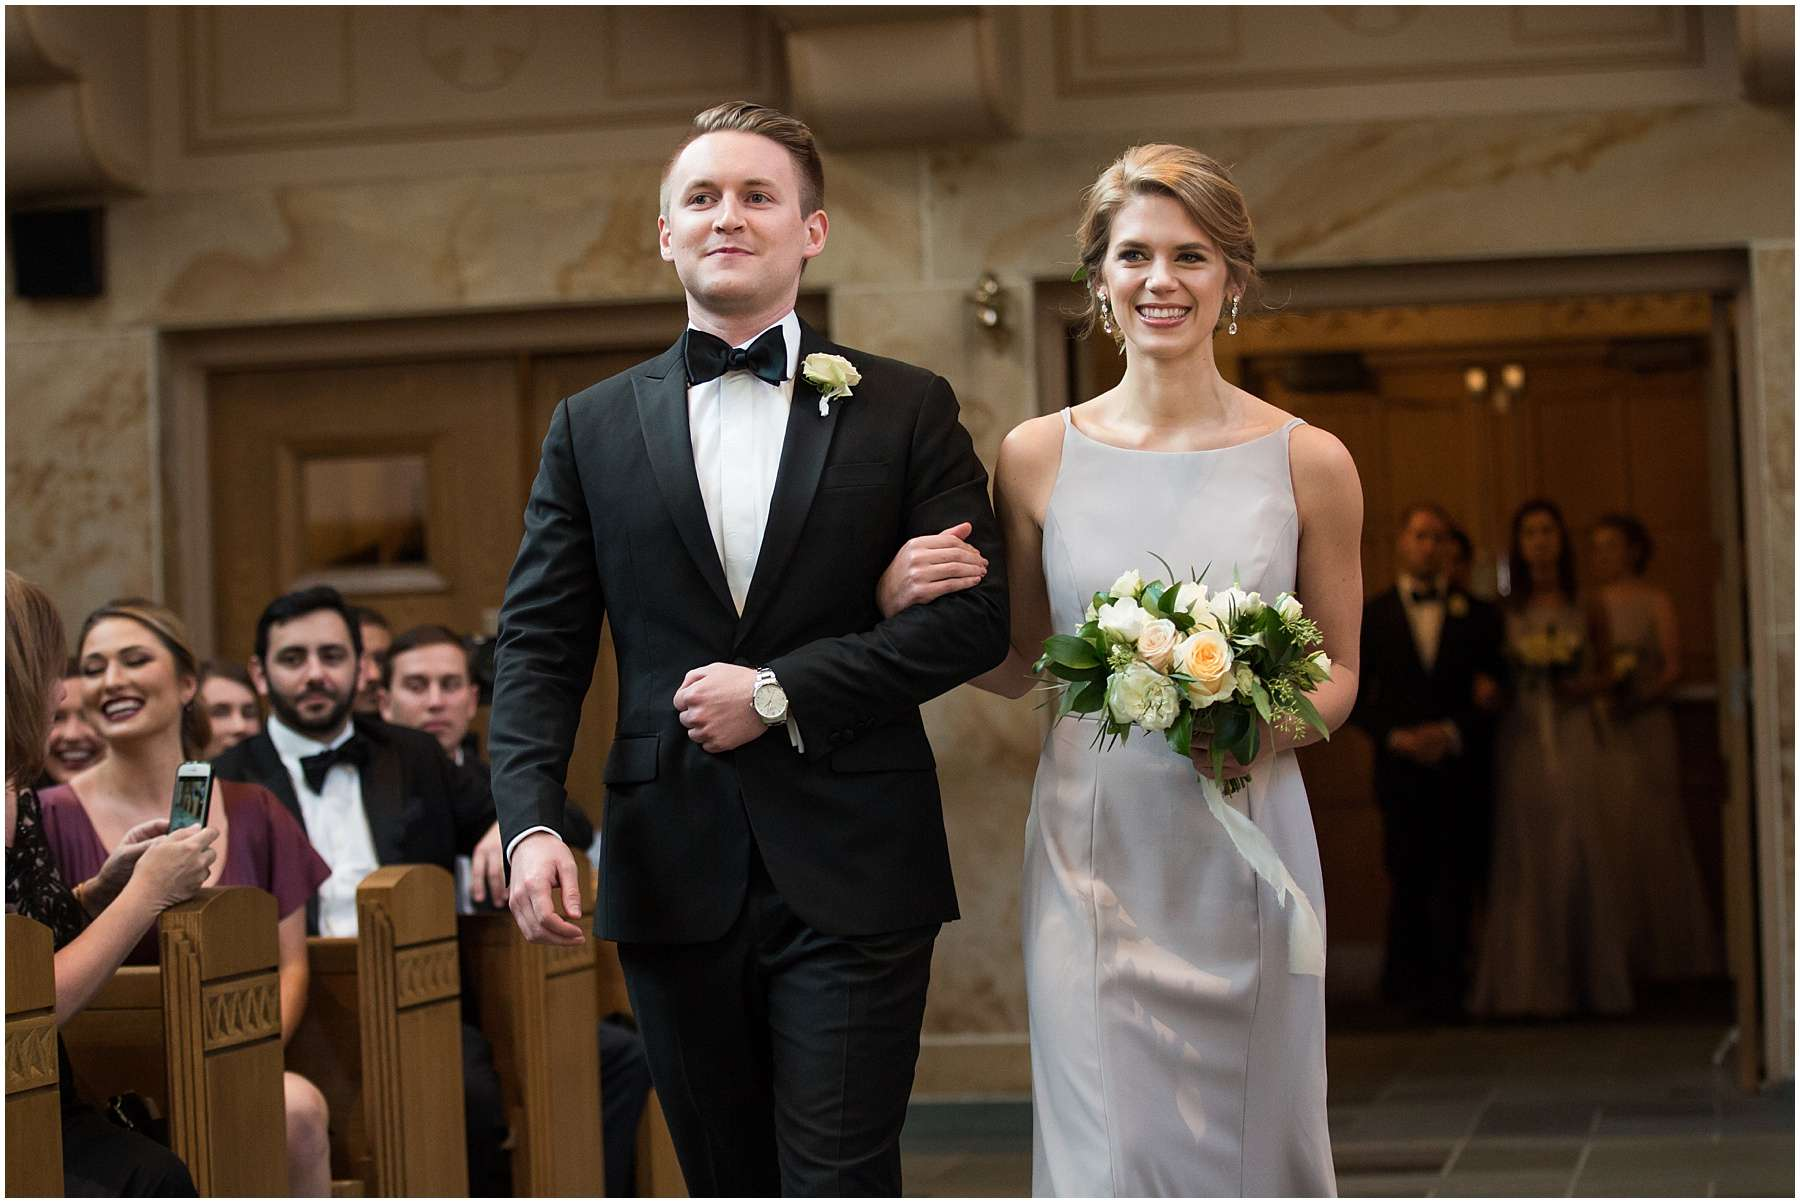 Wedding at the Ohio Statehouse | Columbus Ohio Weddings 64